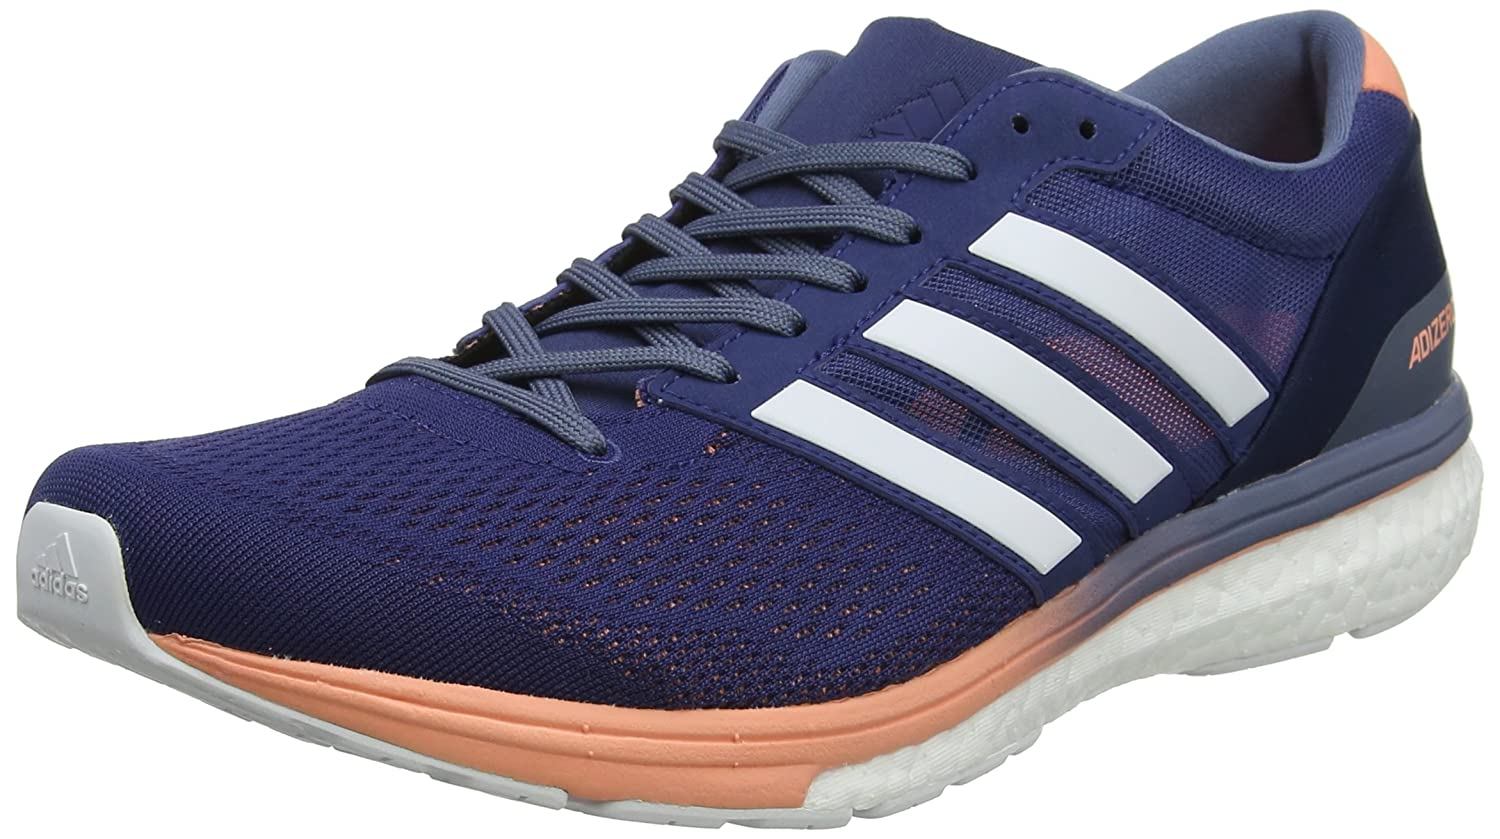 adidas boston stivali running scarpe